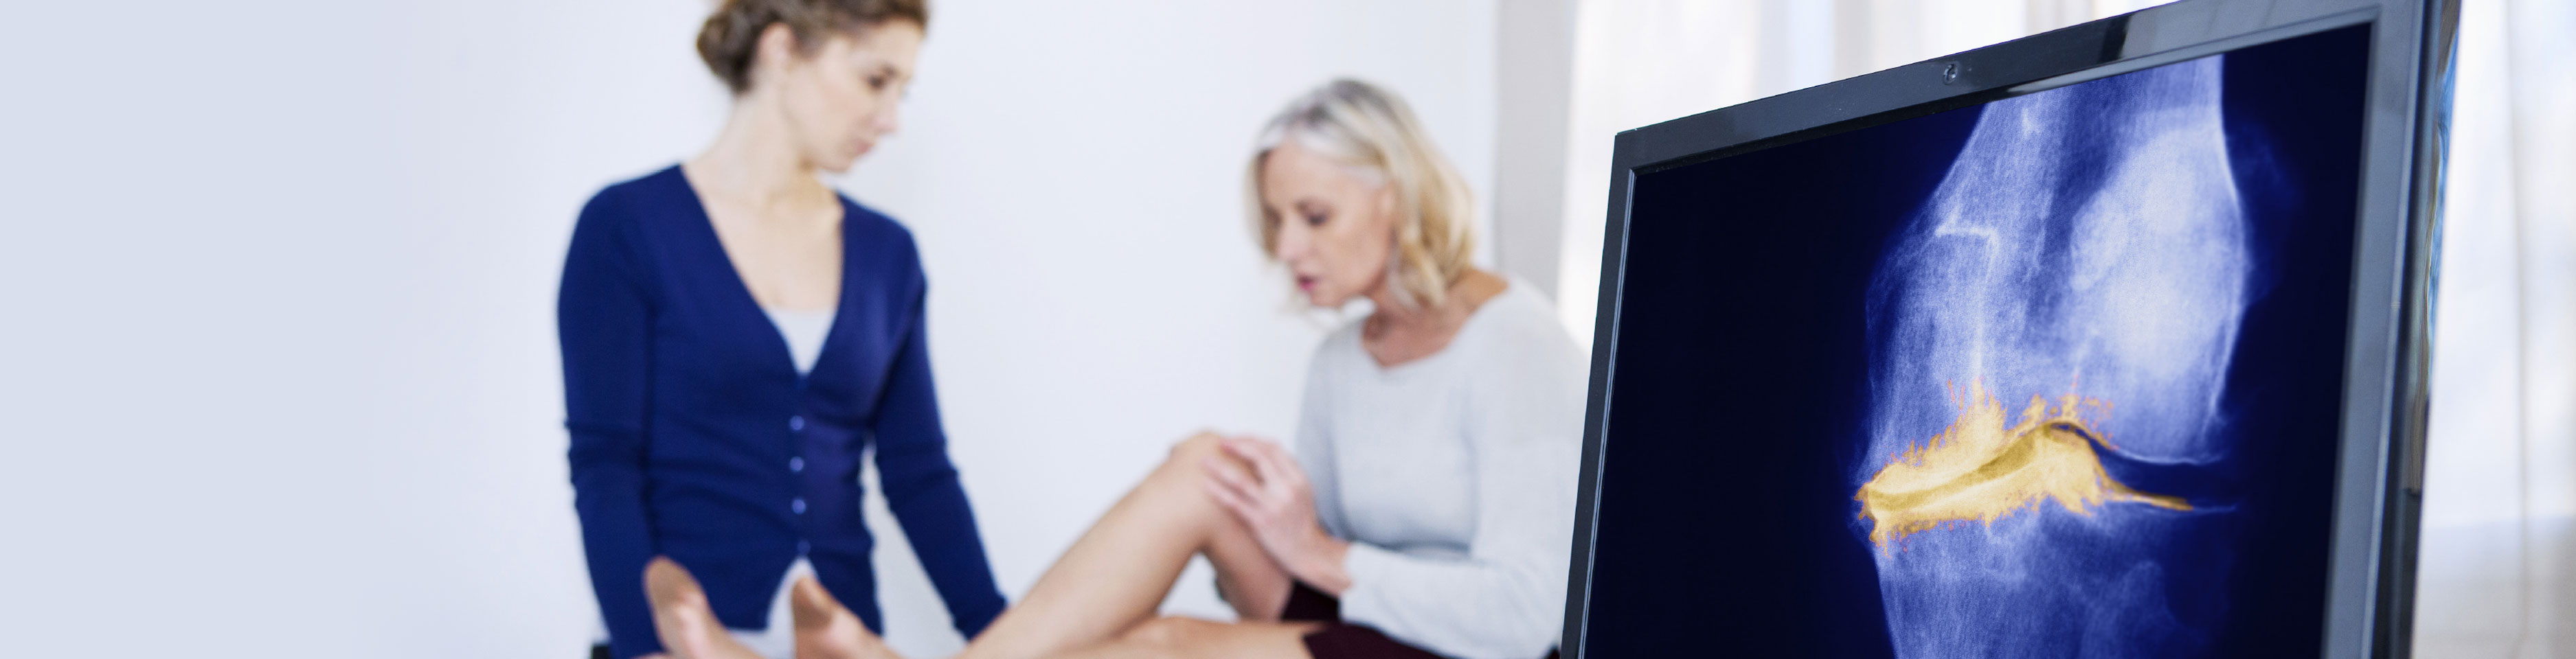 Doctor treats a patient and looks at scan of her leg